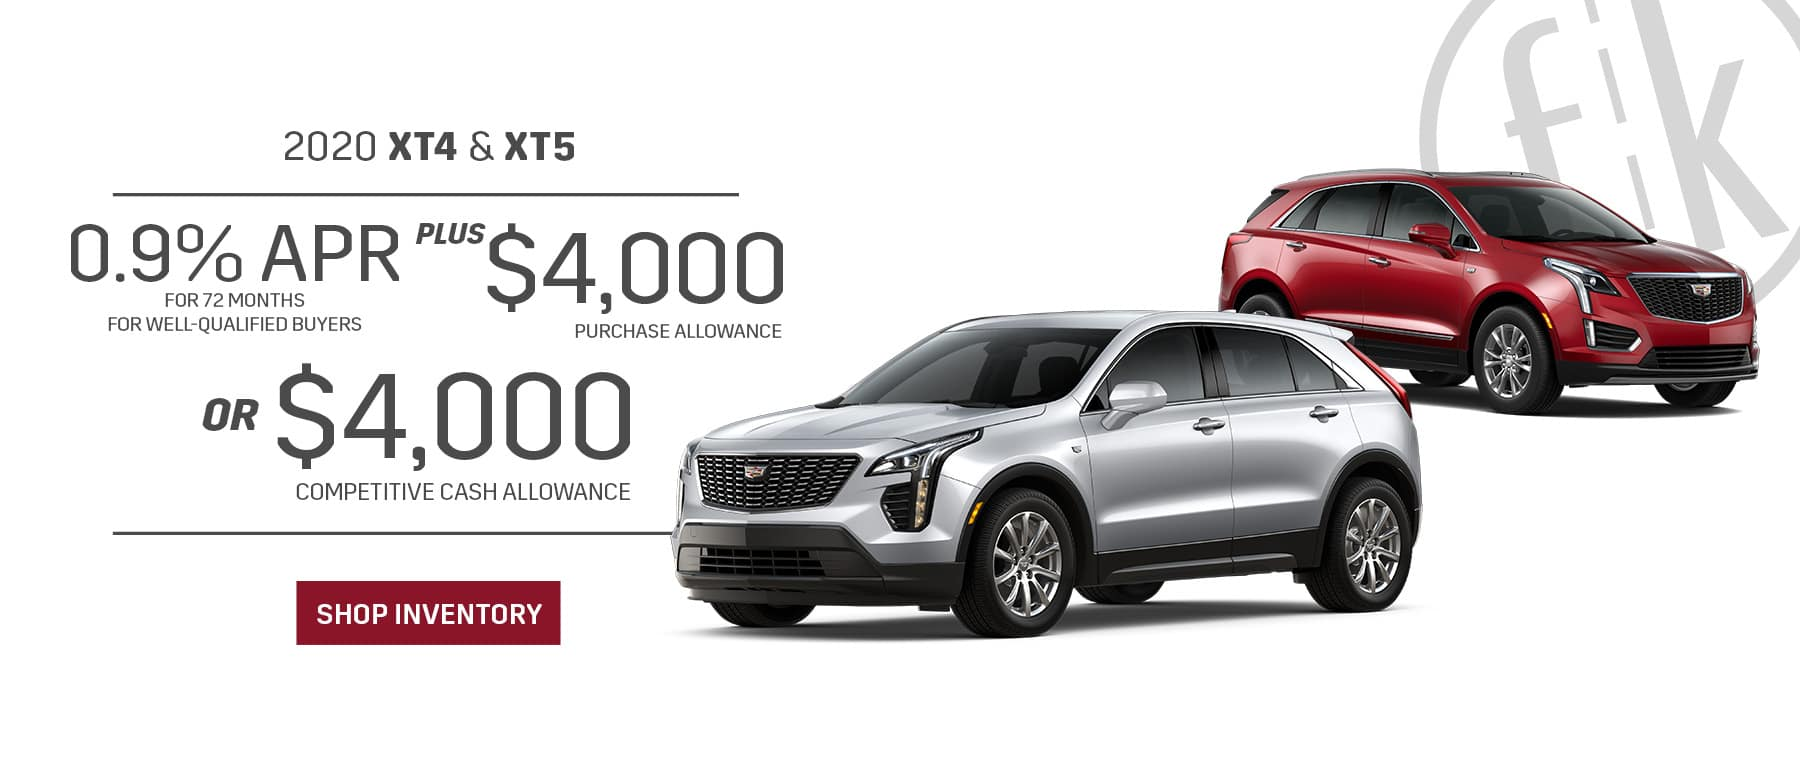 2020 XT4 & XT5 0.9% for 72 mos. PLUS $4,000 Purchase Allowance OR $4,000 Competitive Cash Allowance